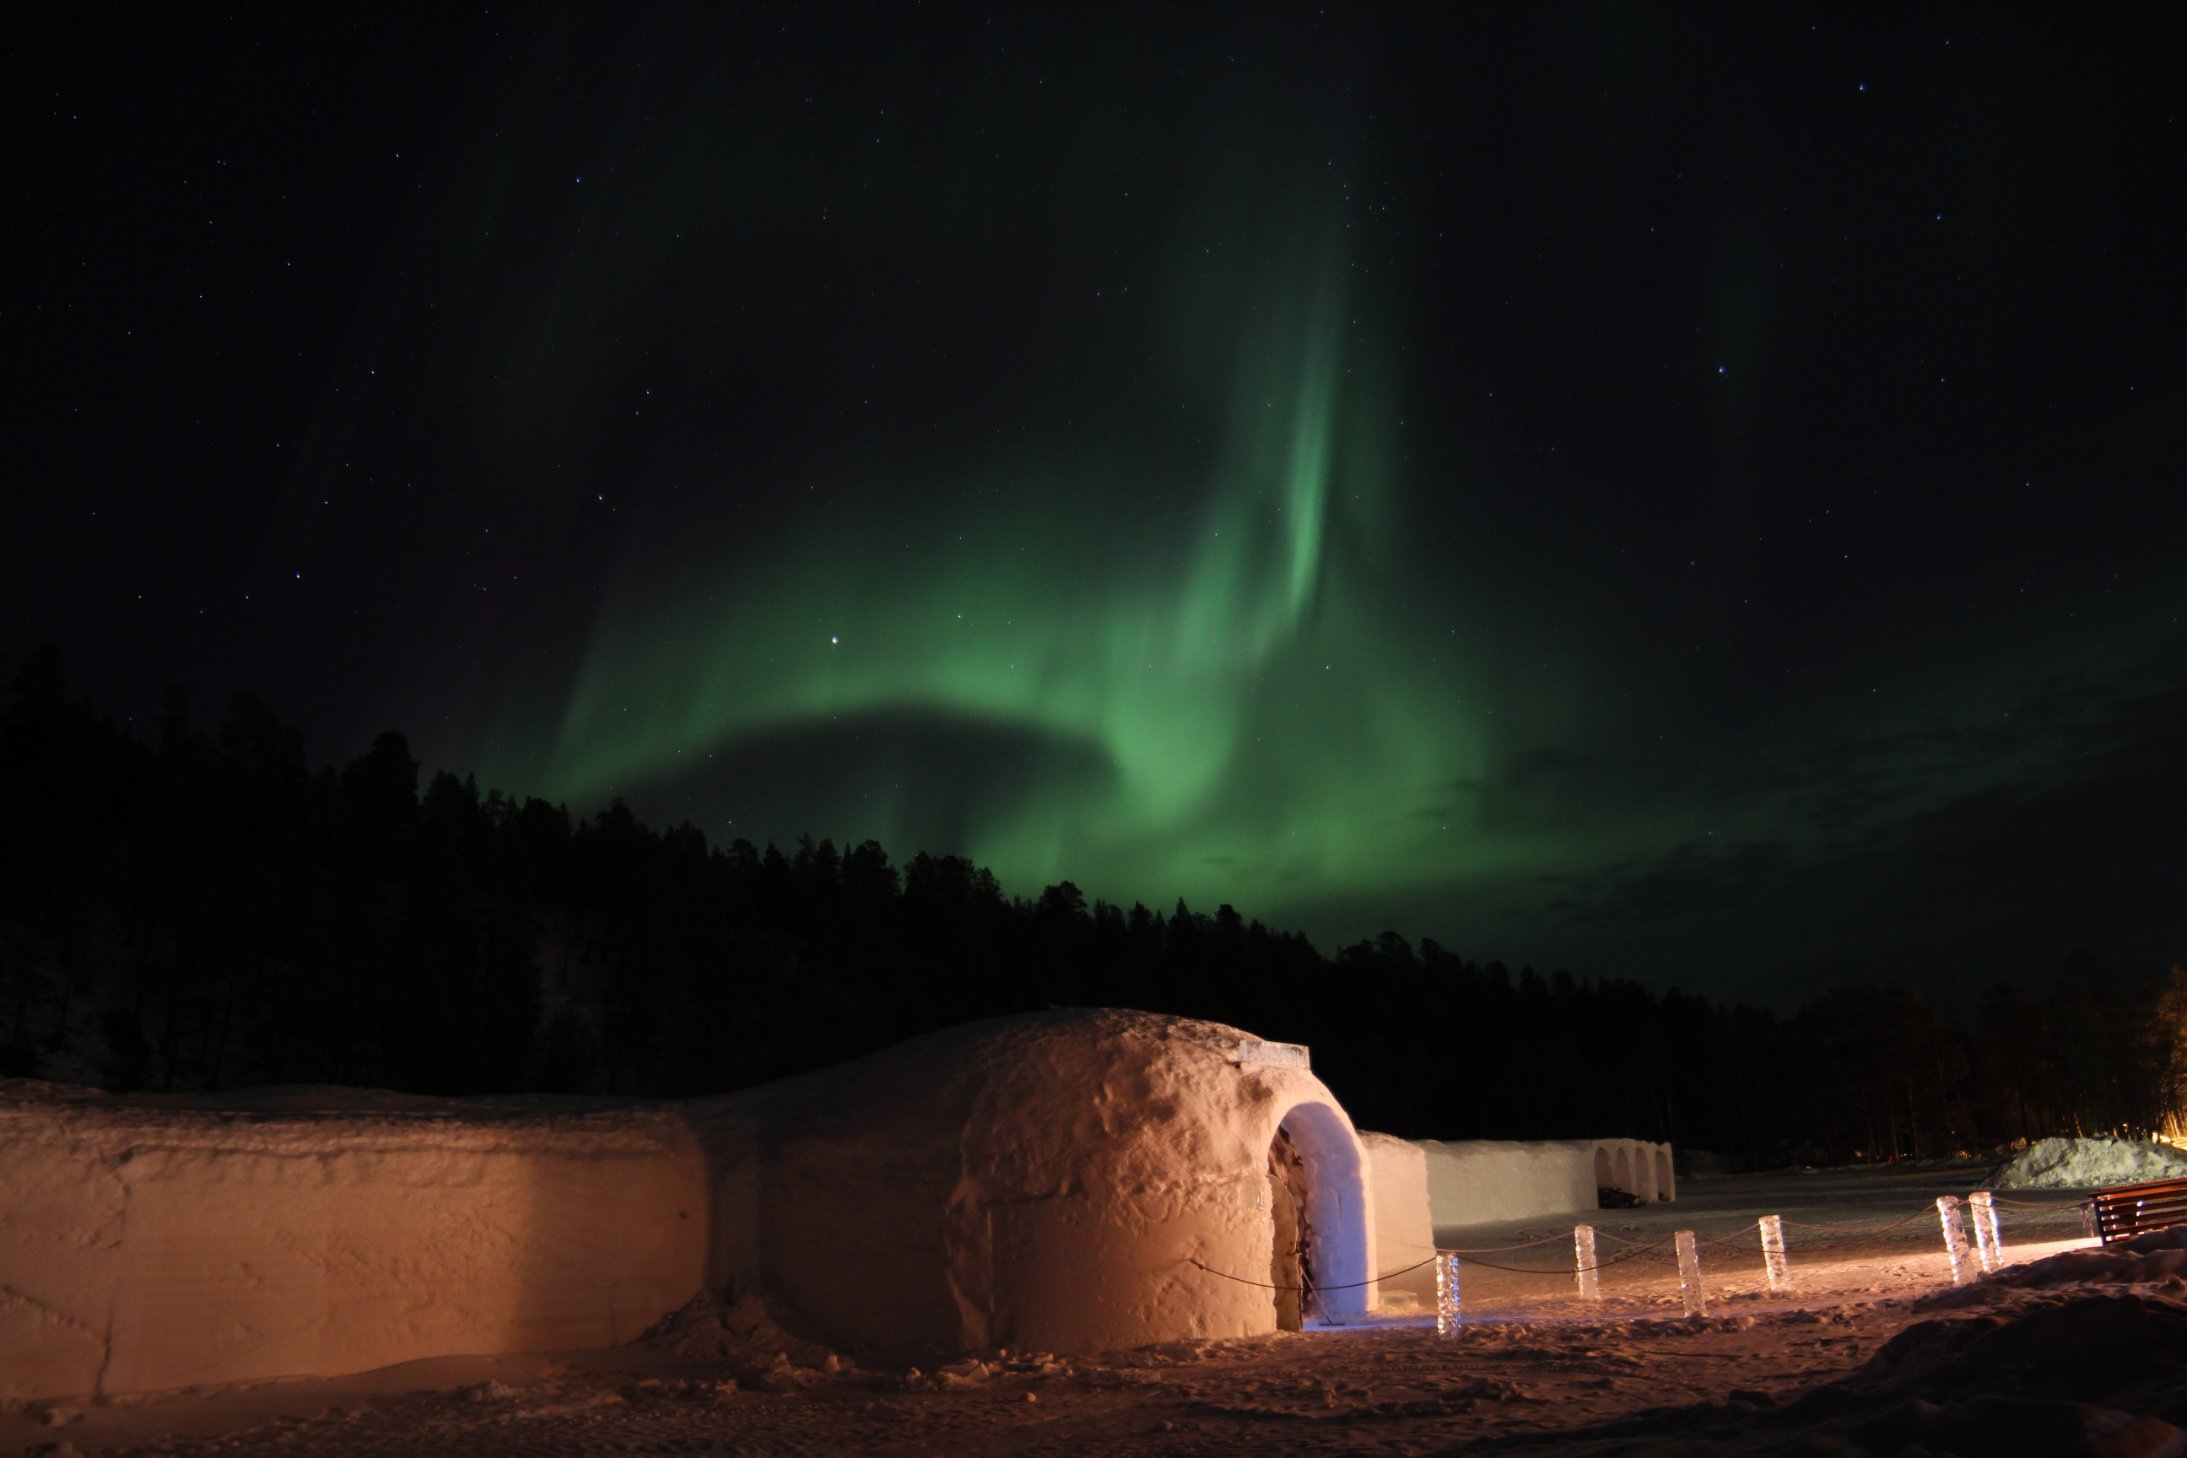 Northern Lights Hotels: 7 Great Stay And View Spots | CNN Travel